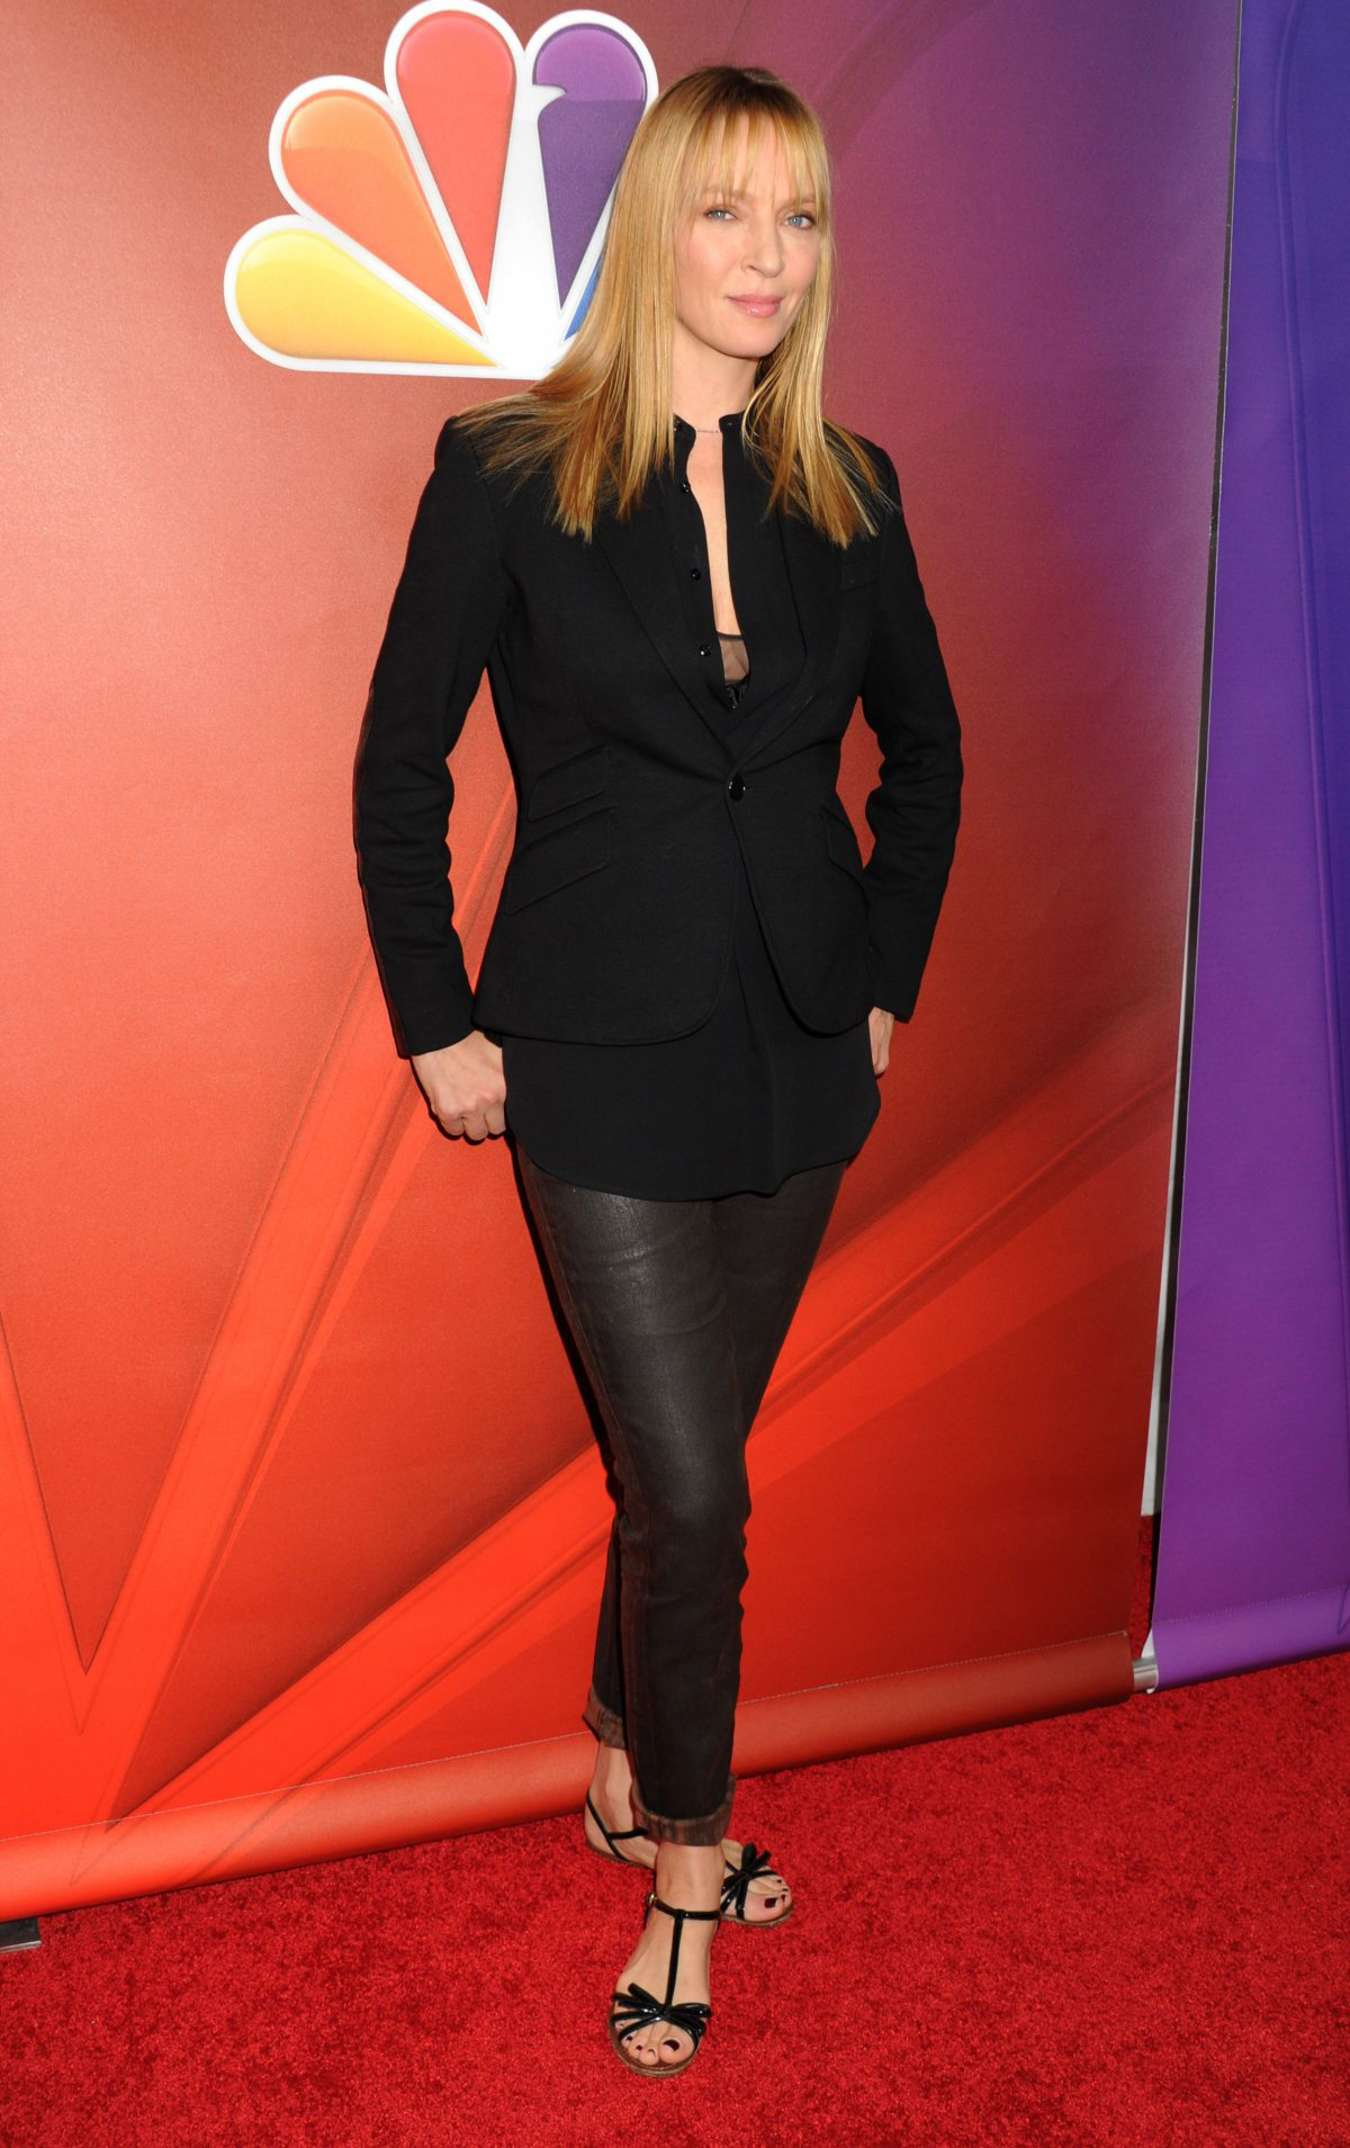 Uma Thurman: 2015 NBCUniversal Press Tour Day 2 -02 - GotCeleb